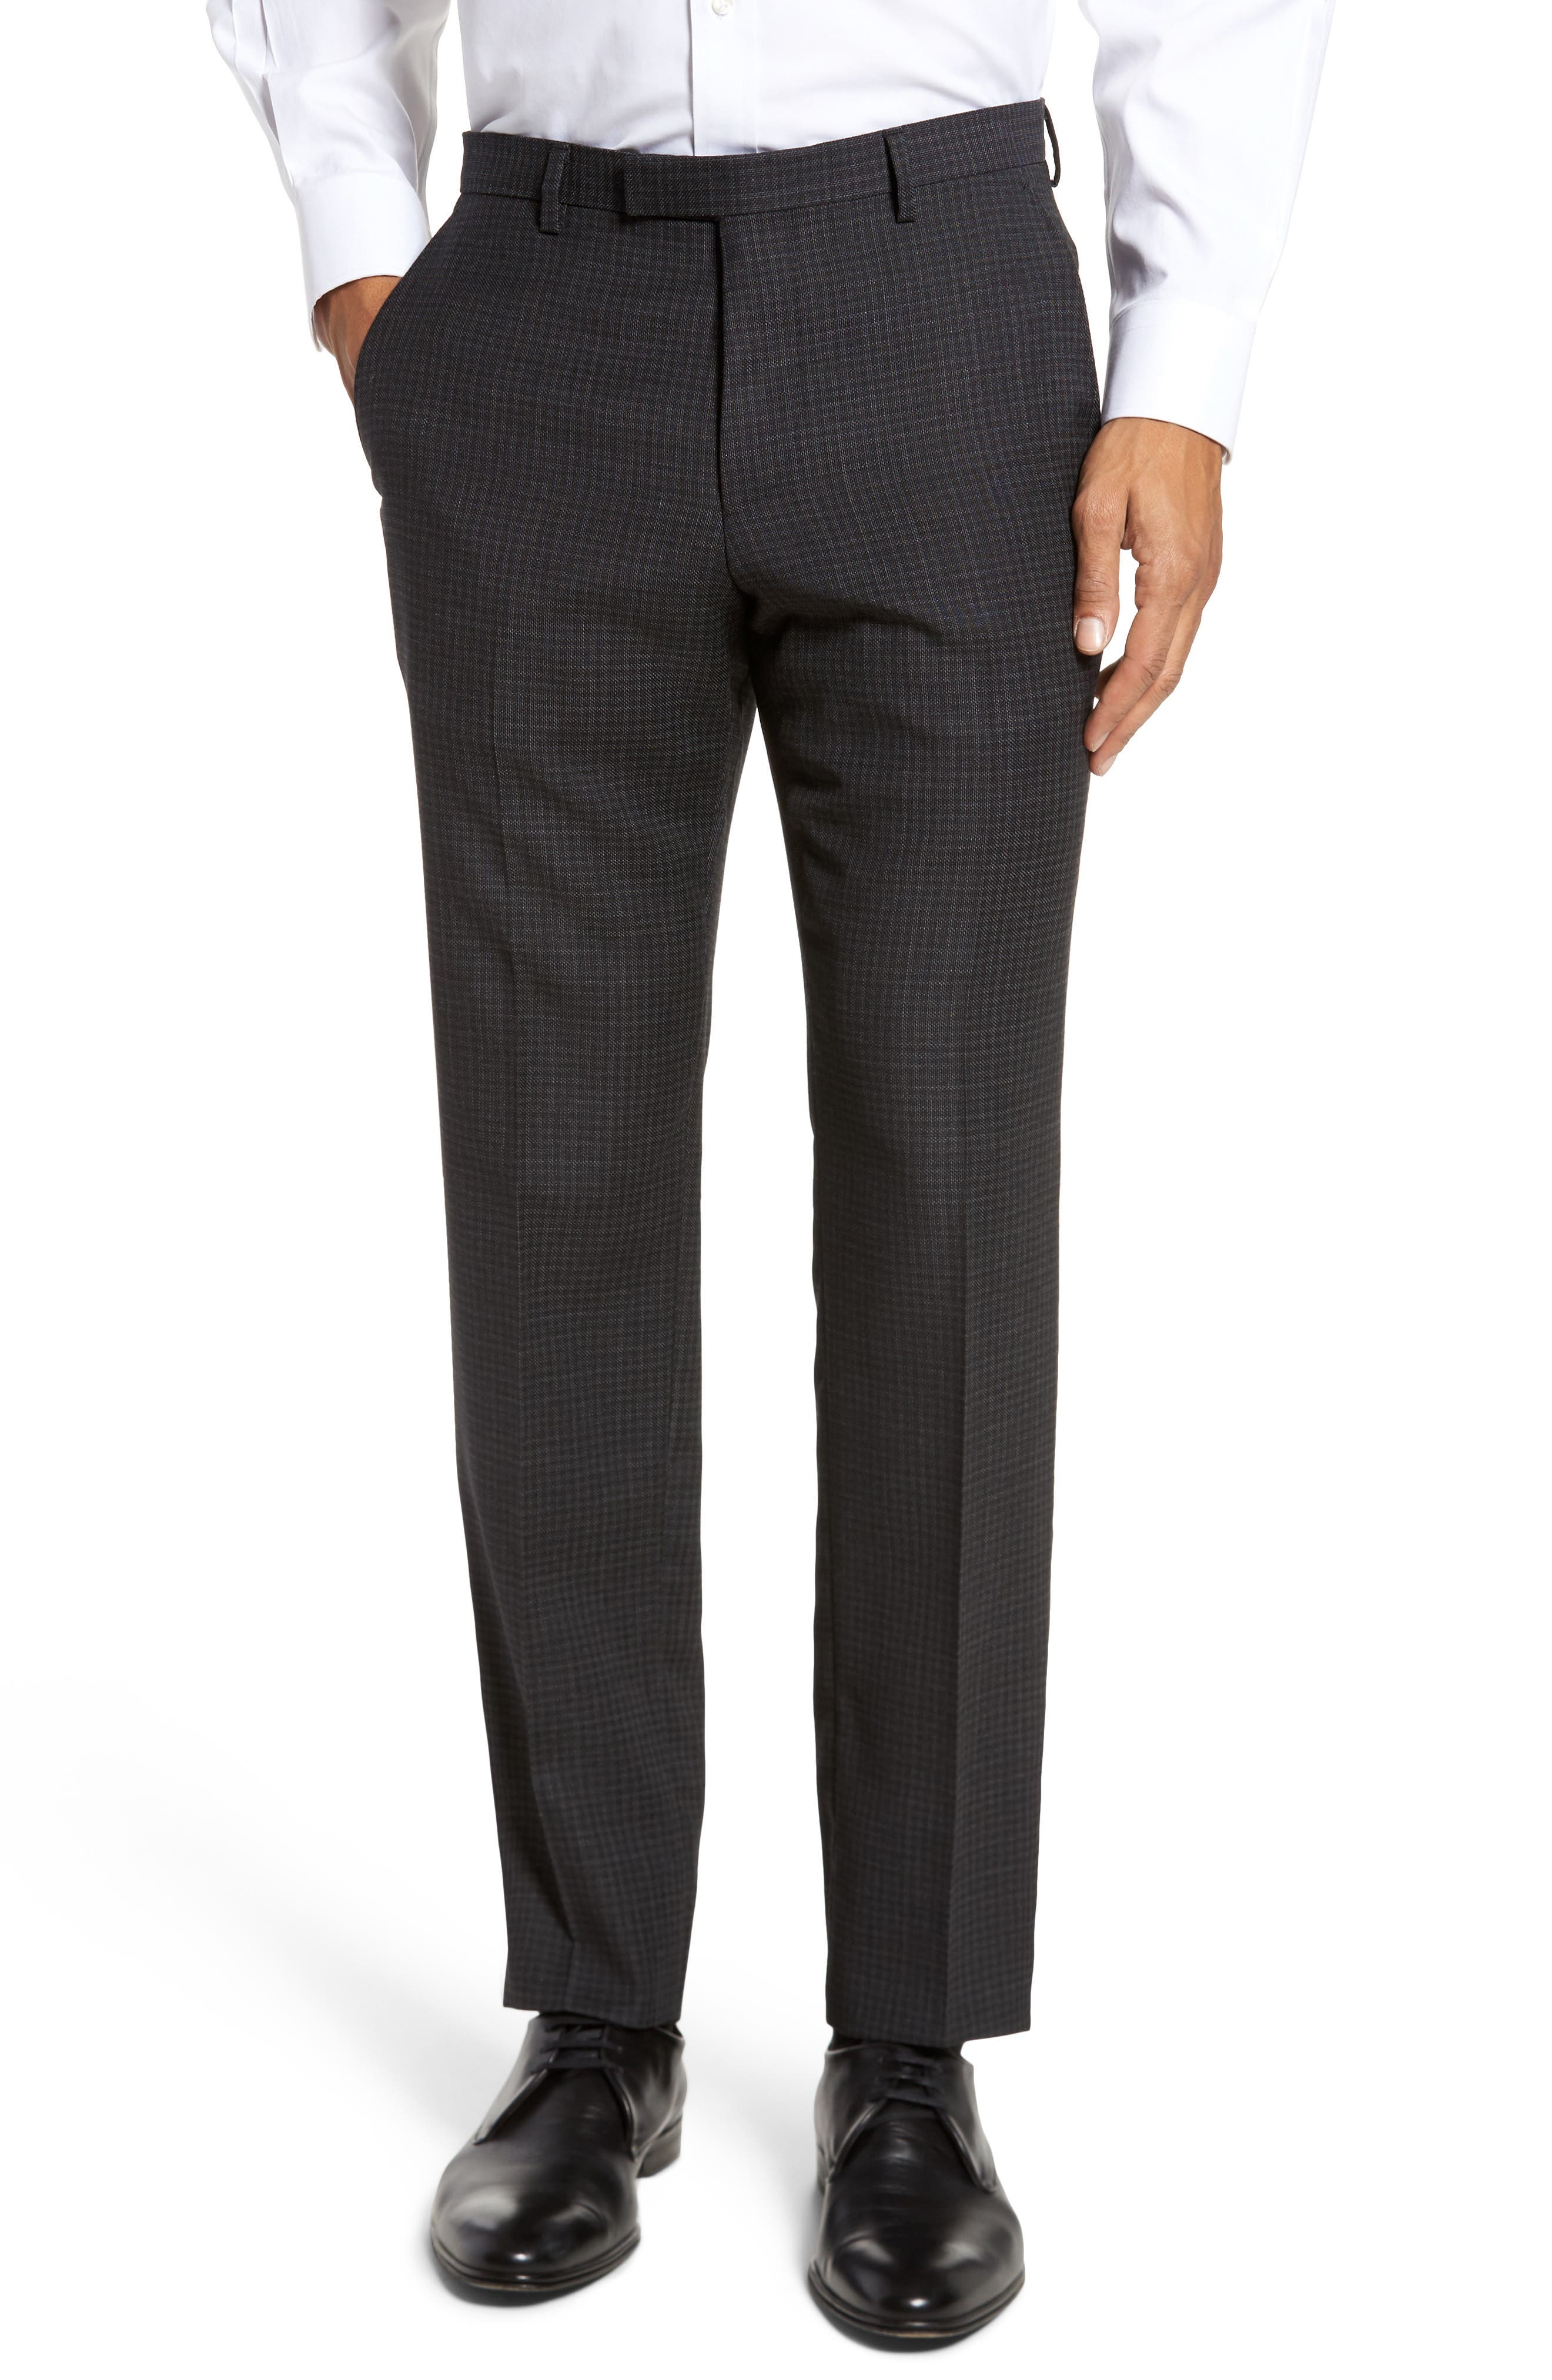 Leenon Flat Front Regular Fit Check Wool Trousers,                         Main,                         color, 001